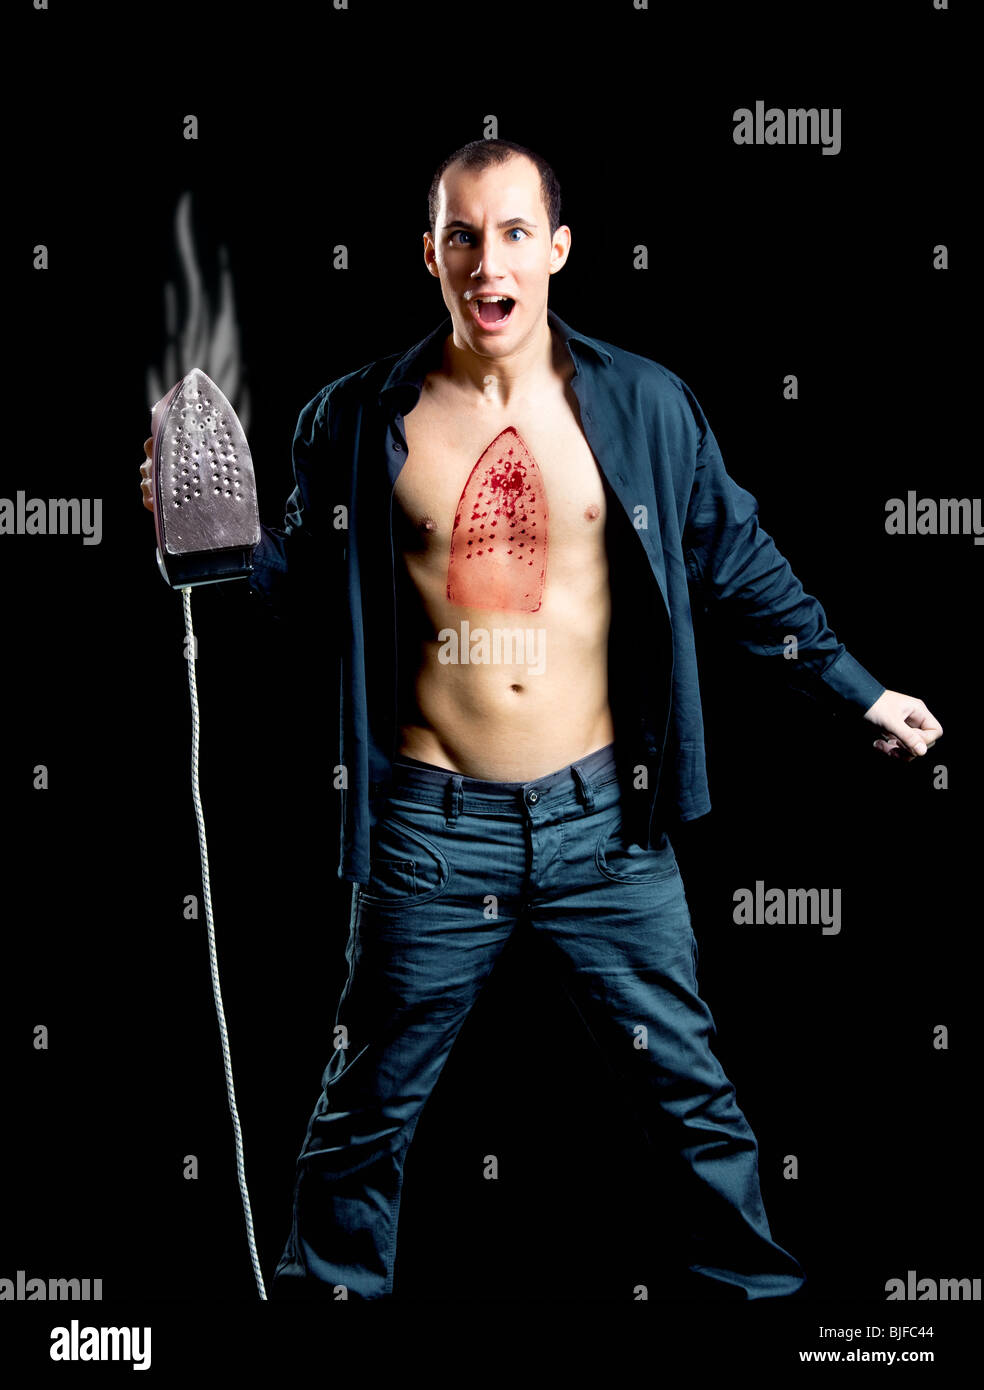 Crazy man with a hot burn on the chest - Stock Image